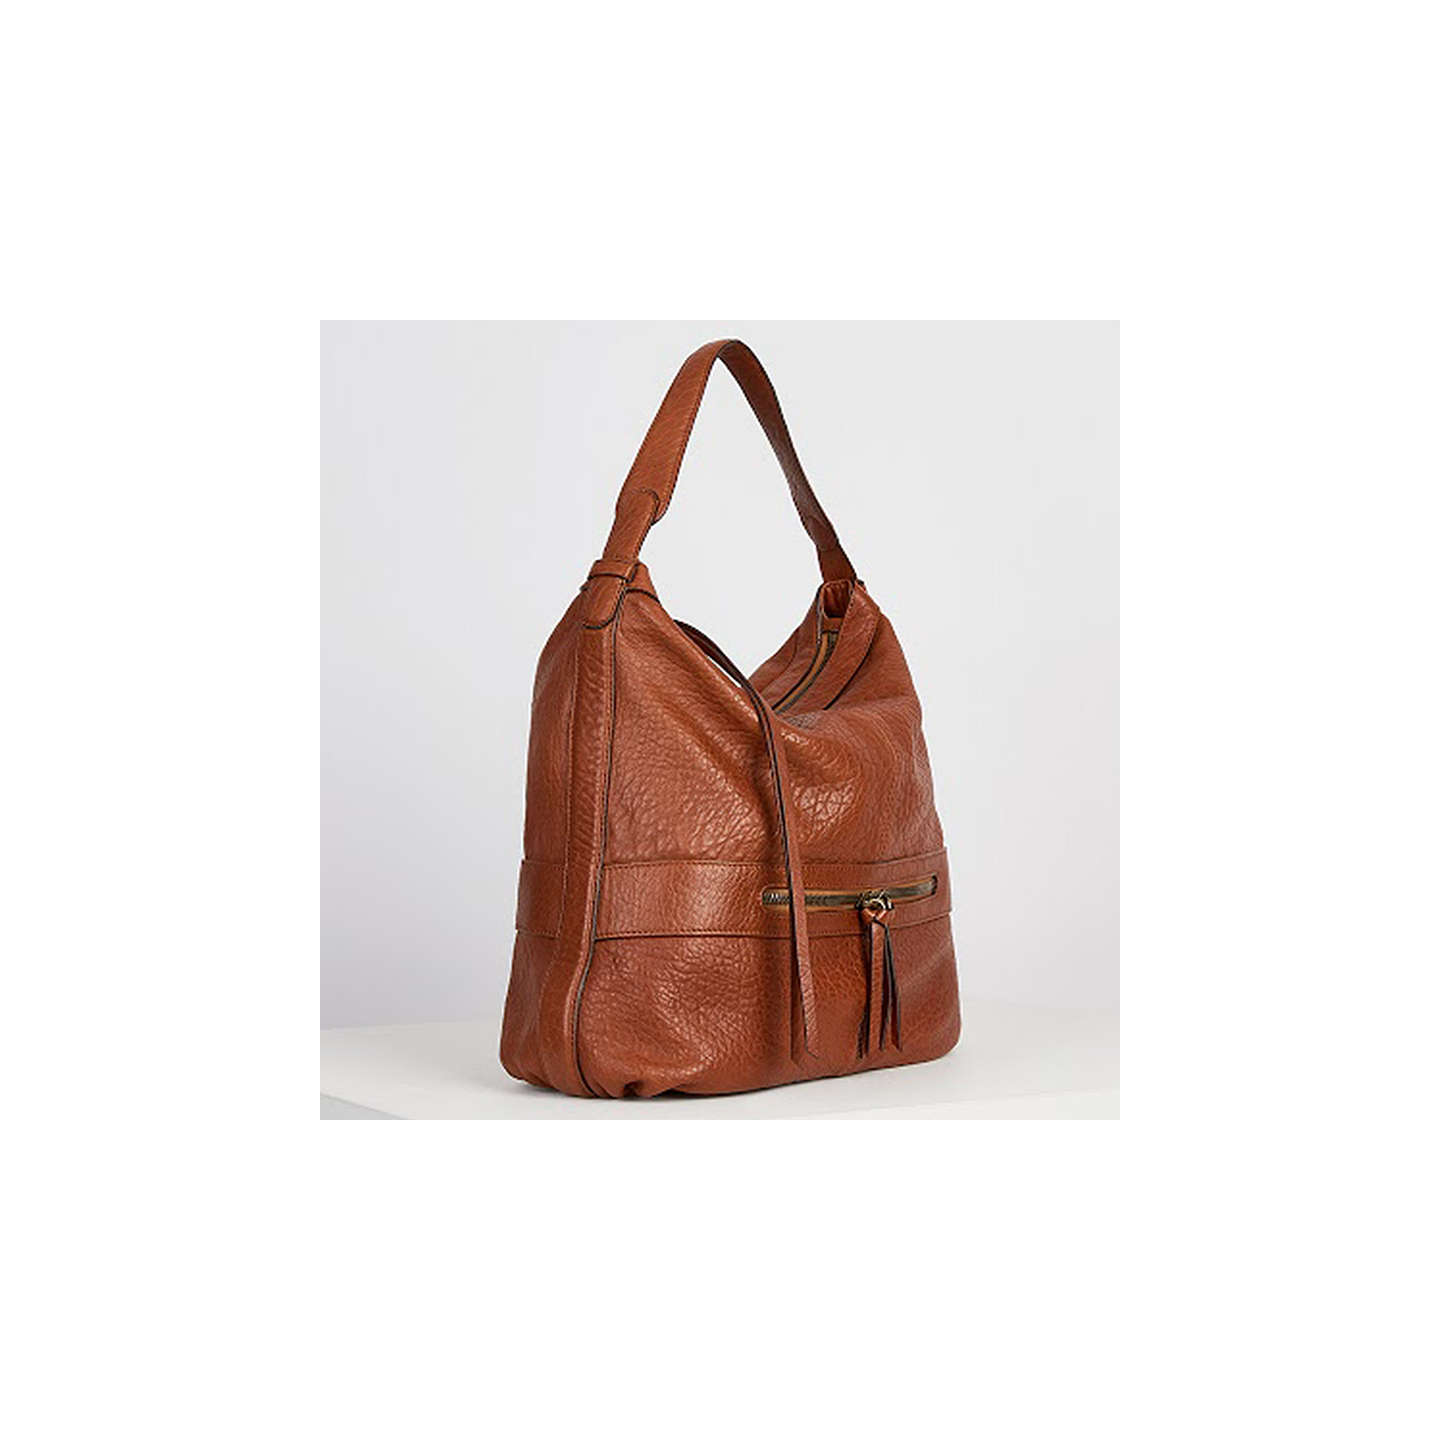 BuyGerard Darel Midday GD Tassel Shoulder Bag, Camel Online at johnlewis.com